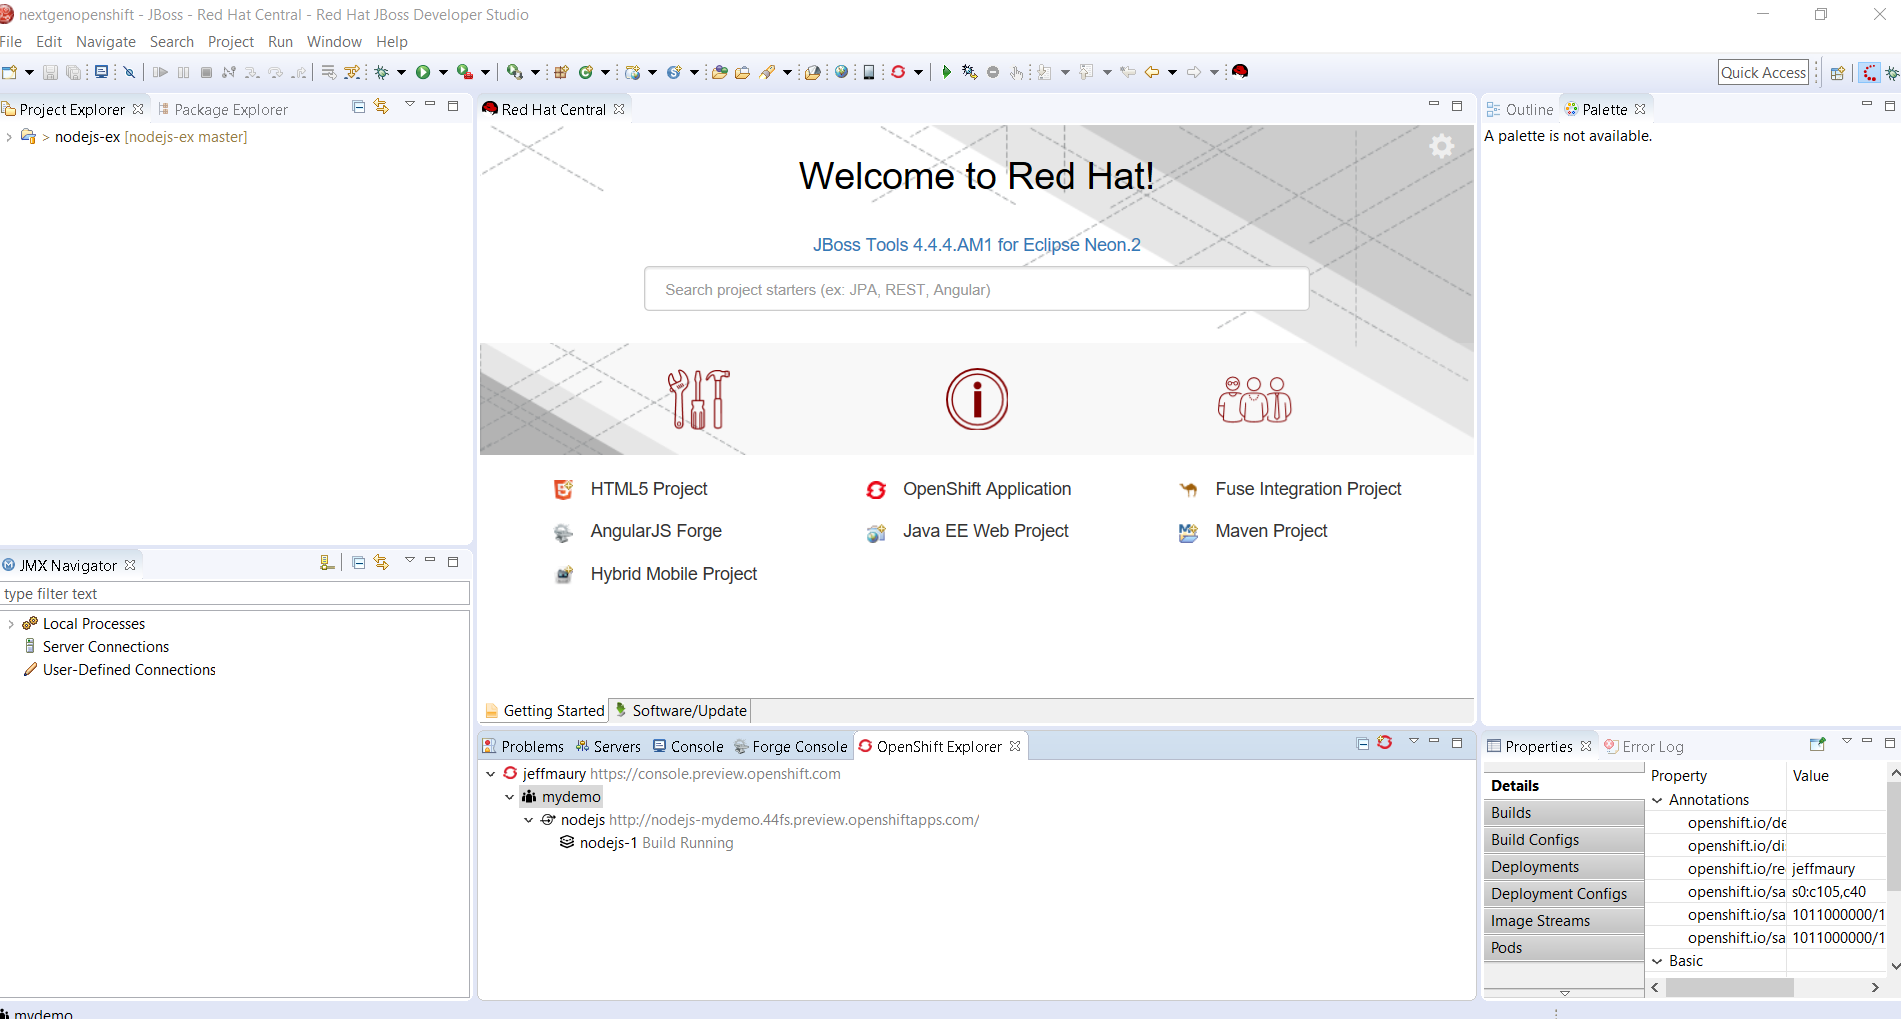 Develop and Deploy on OpenShift Next-Gen using Red Hat JBoss